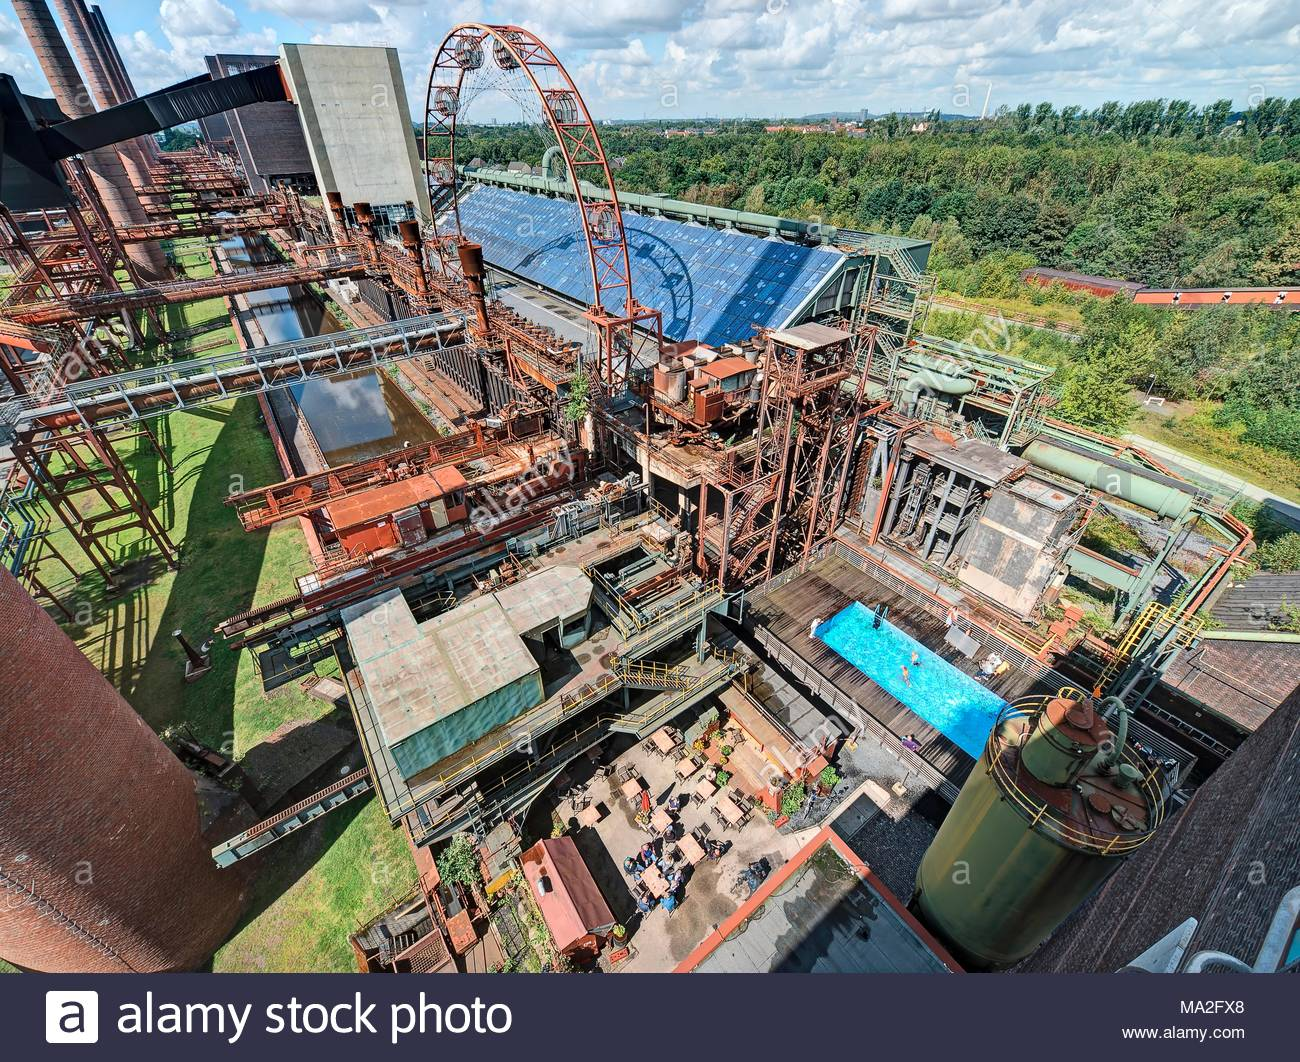 Zollverein coal min in Essen, Ruhr district, North Rhine Westphalia - Stock Image